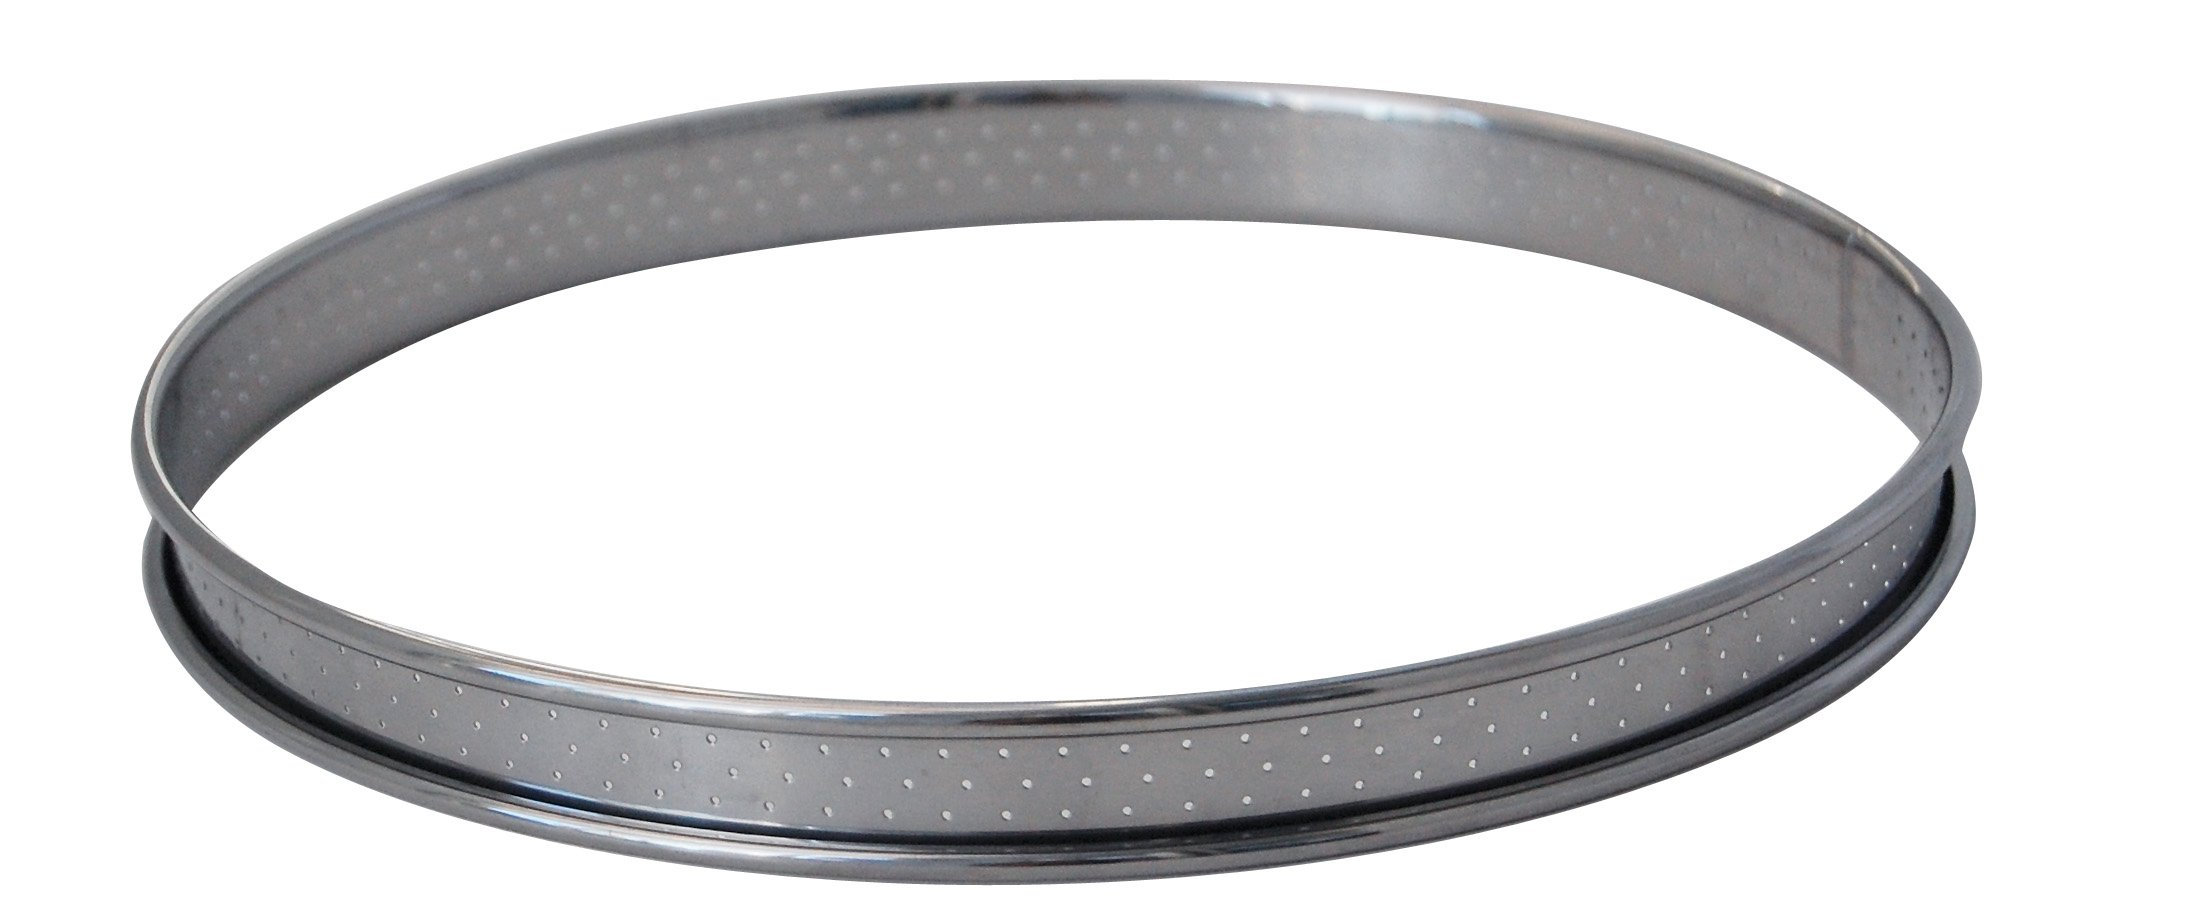 De Buyer Stainless Steel Round Tart Ring with Perforated Rounded-Off Edges, Silver